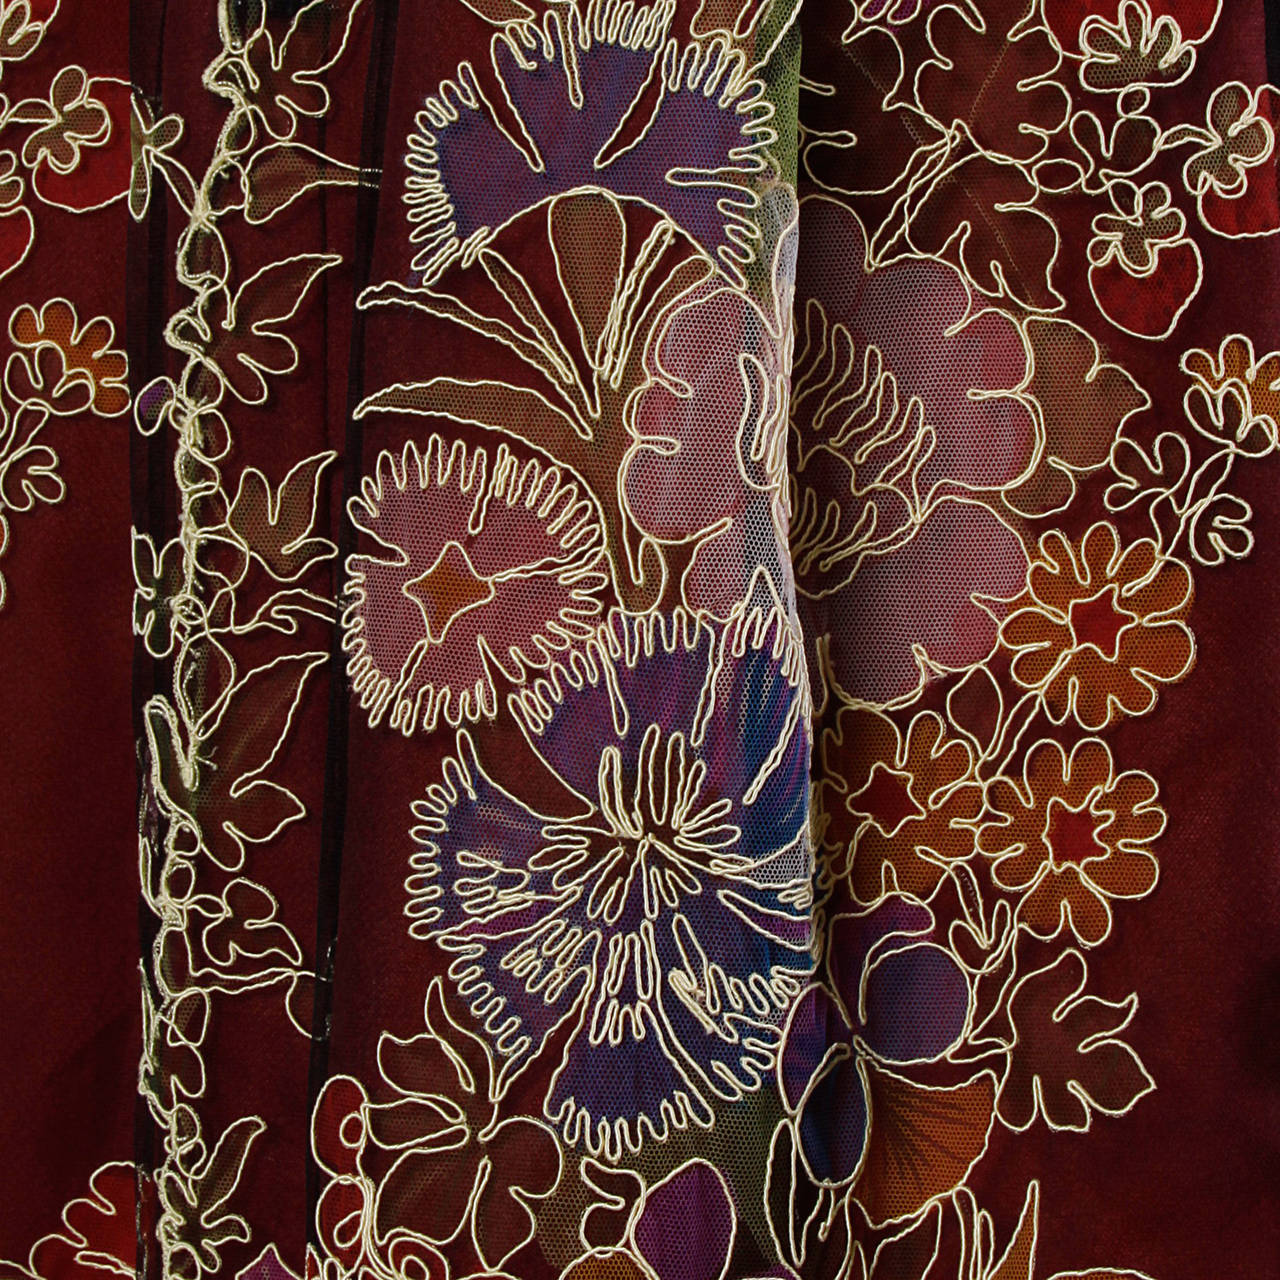 Donald Brooks Unworn Vintage 1970s Hand Painted Tulle Embroidered Dress For Sale 1